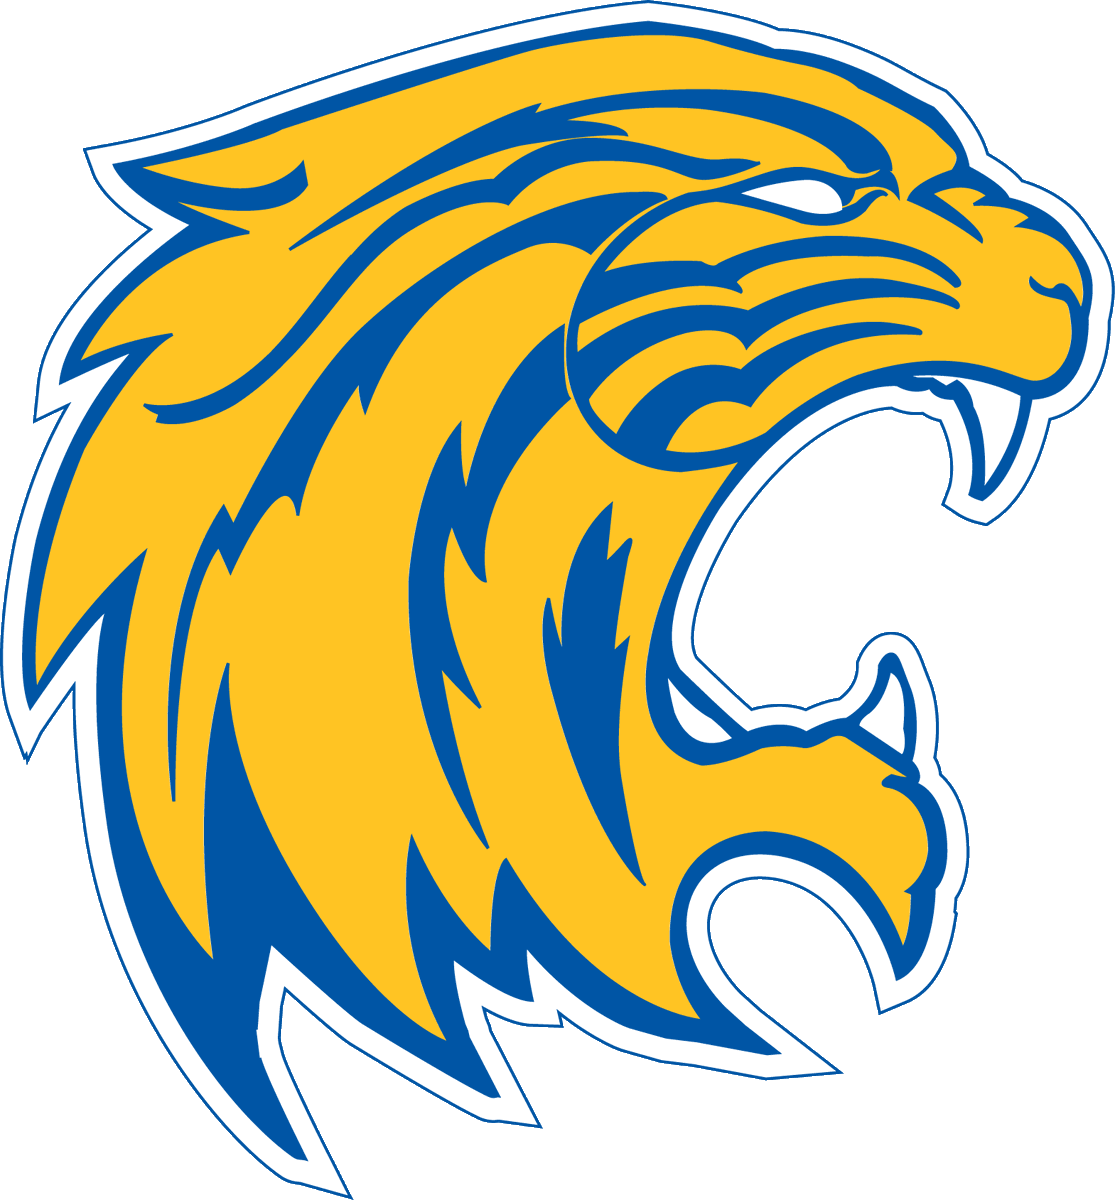 SENIORS:  Apply for the Booster Club Scholarship!  https://lexingtonwildcats.com/2020/04/01/seniors-apply-for-the-booster-club-scholarship/ …pic.twitter.com/sGQOvCoB9F